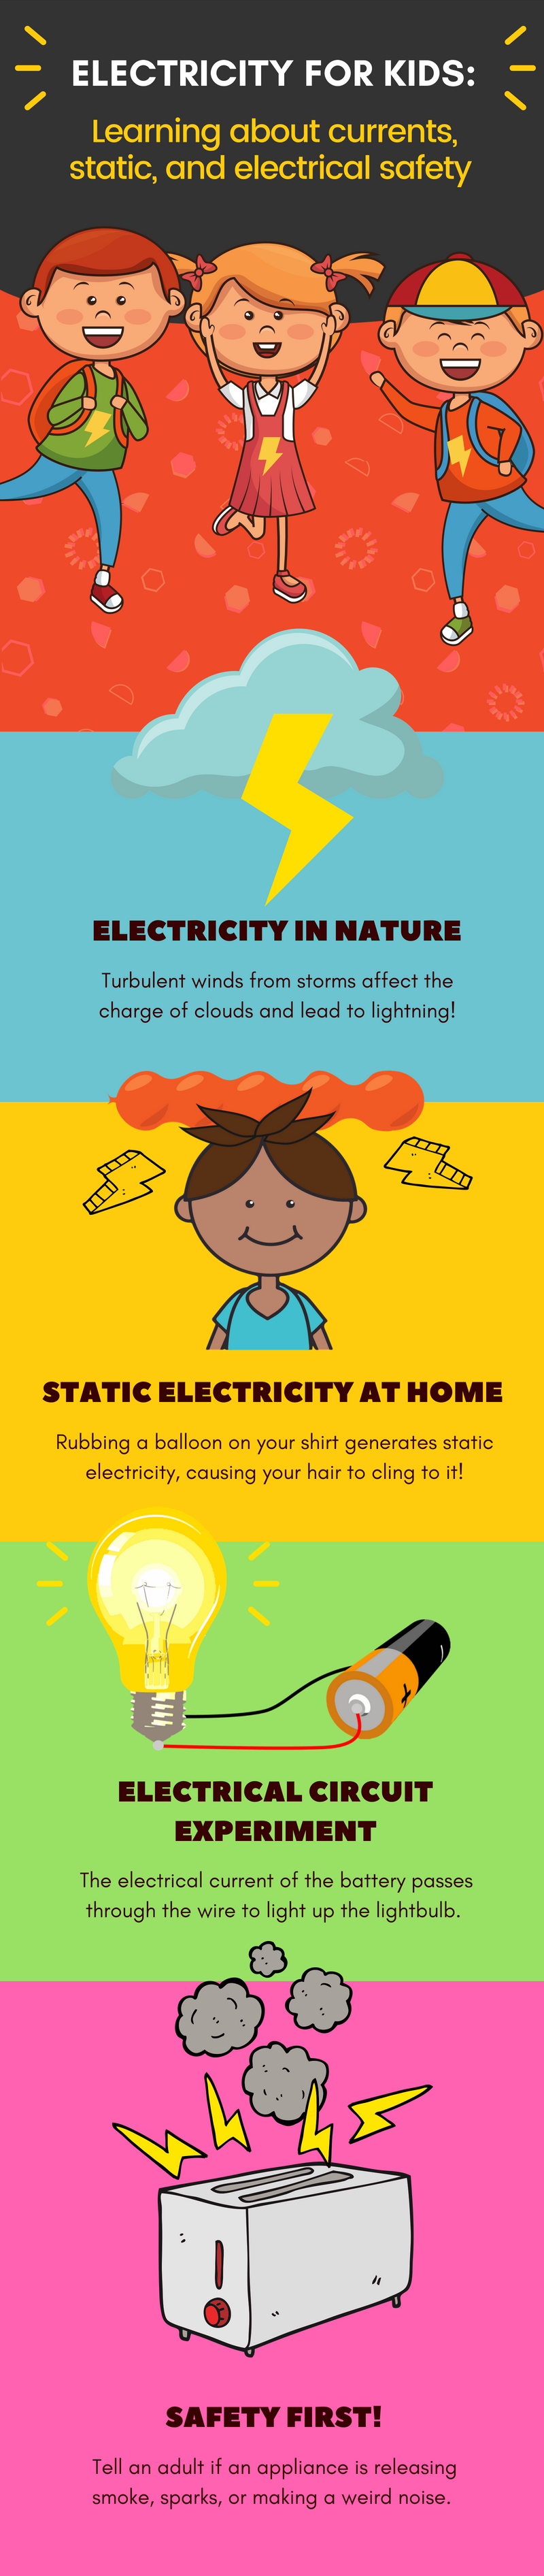 Electricity for Kids Poster Art - Print out Electrcity Illustration